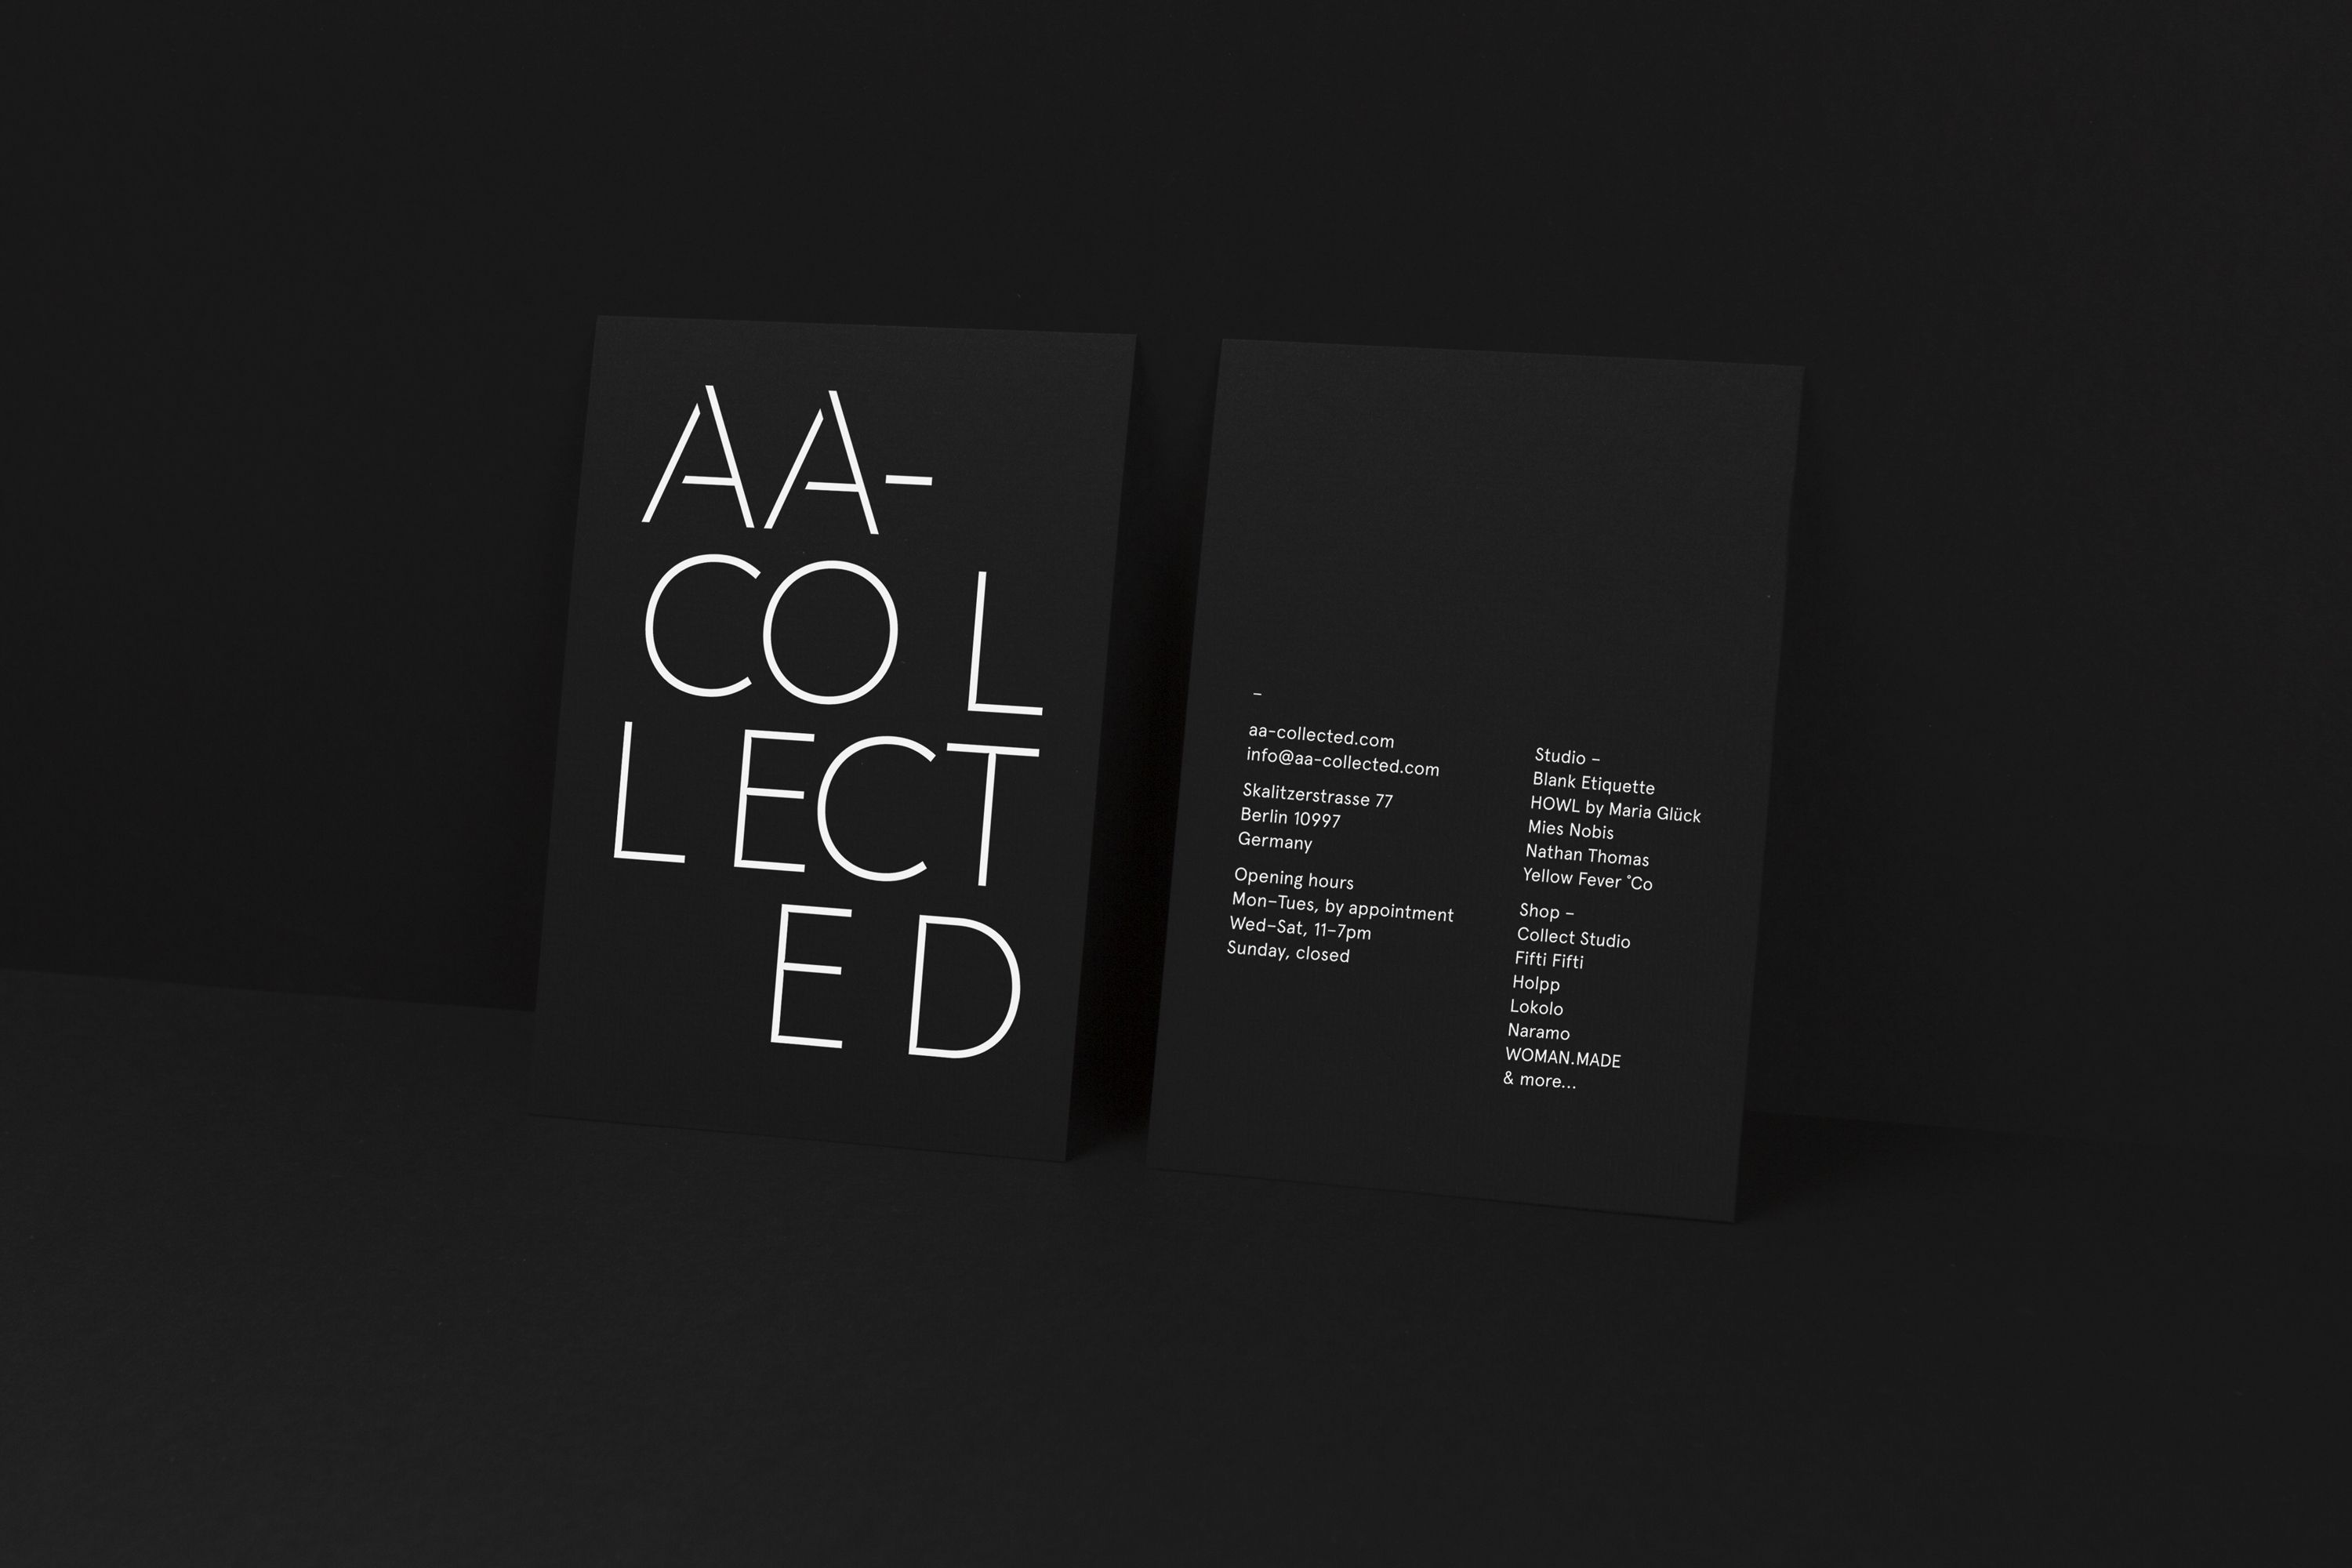 AA-Collected